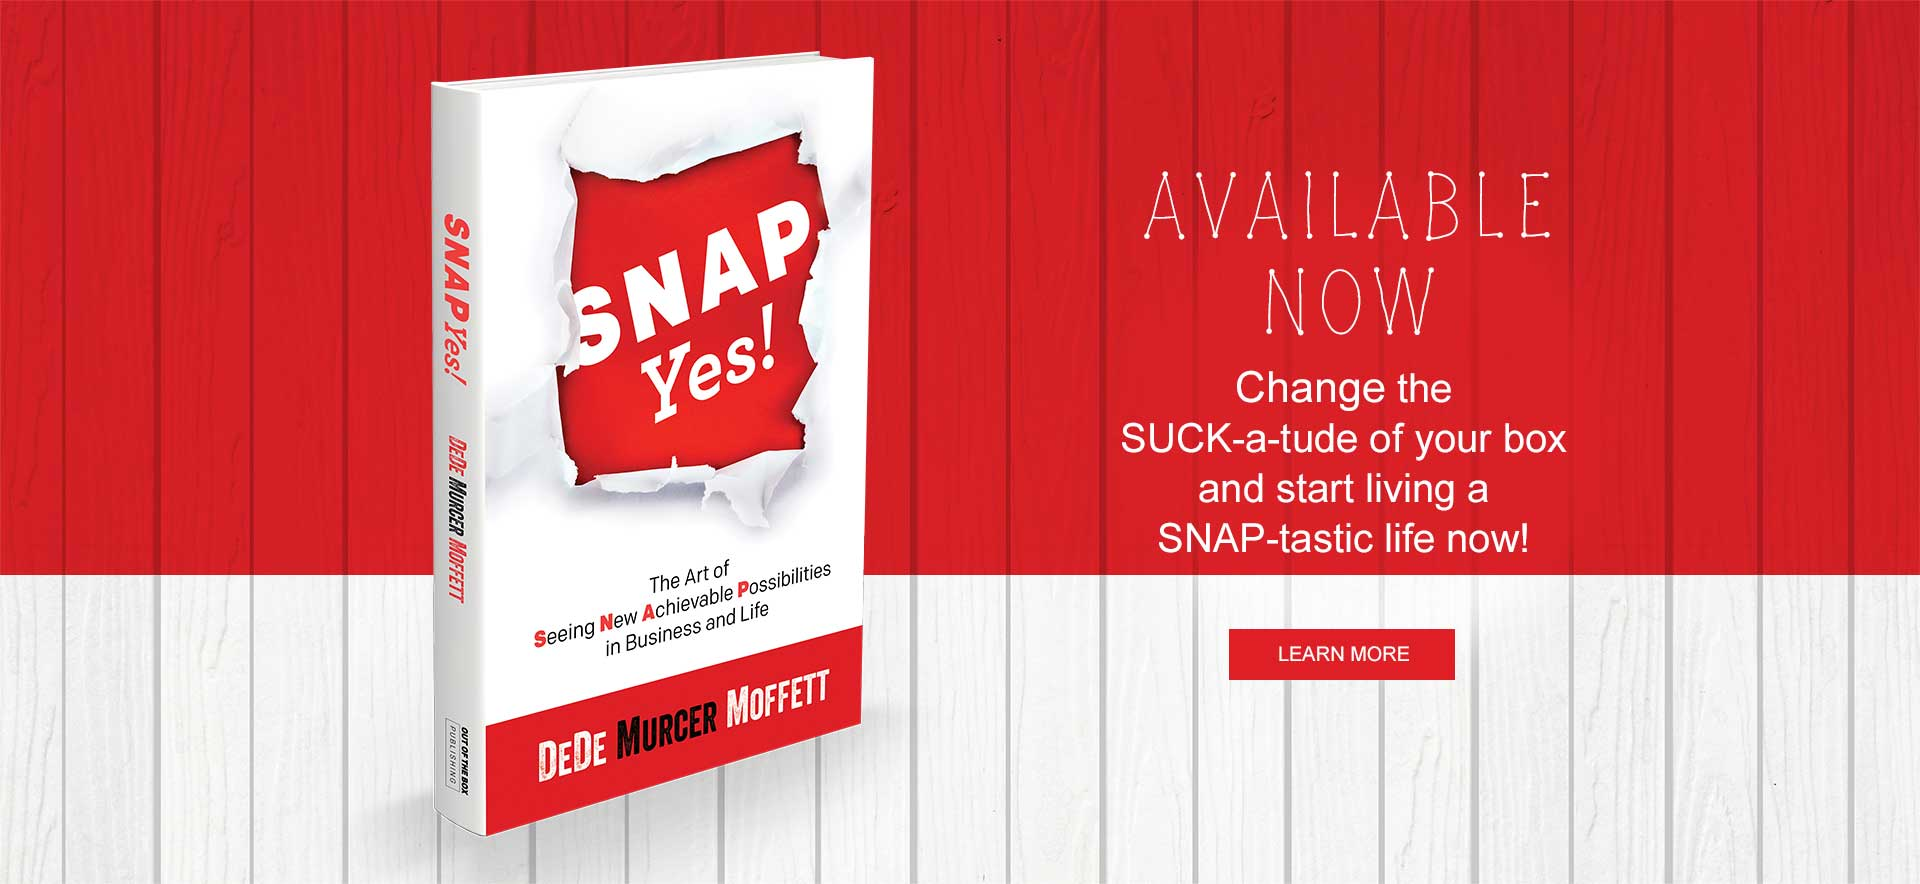 author snap yes keynote speaker dede murcer moffett change in a SNAP business and life